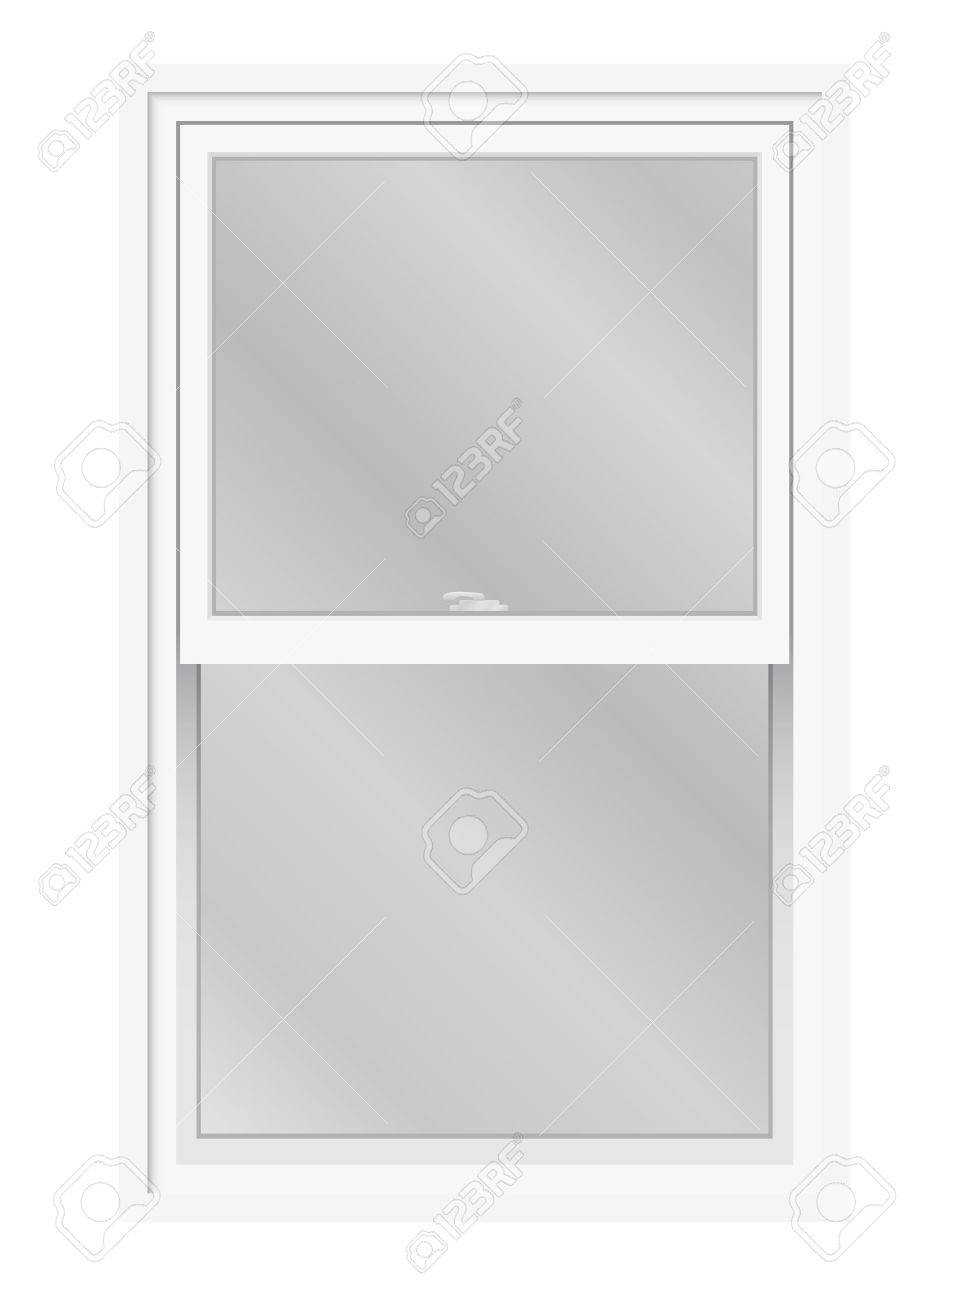 Double hung window isolated. Traditional English or American lifting, slider window, exterior view. - 55050095